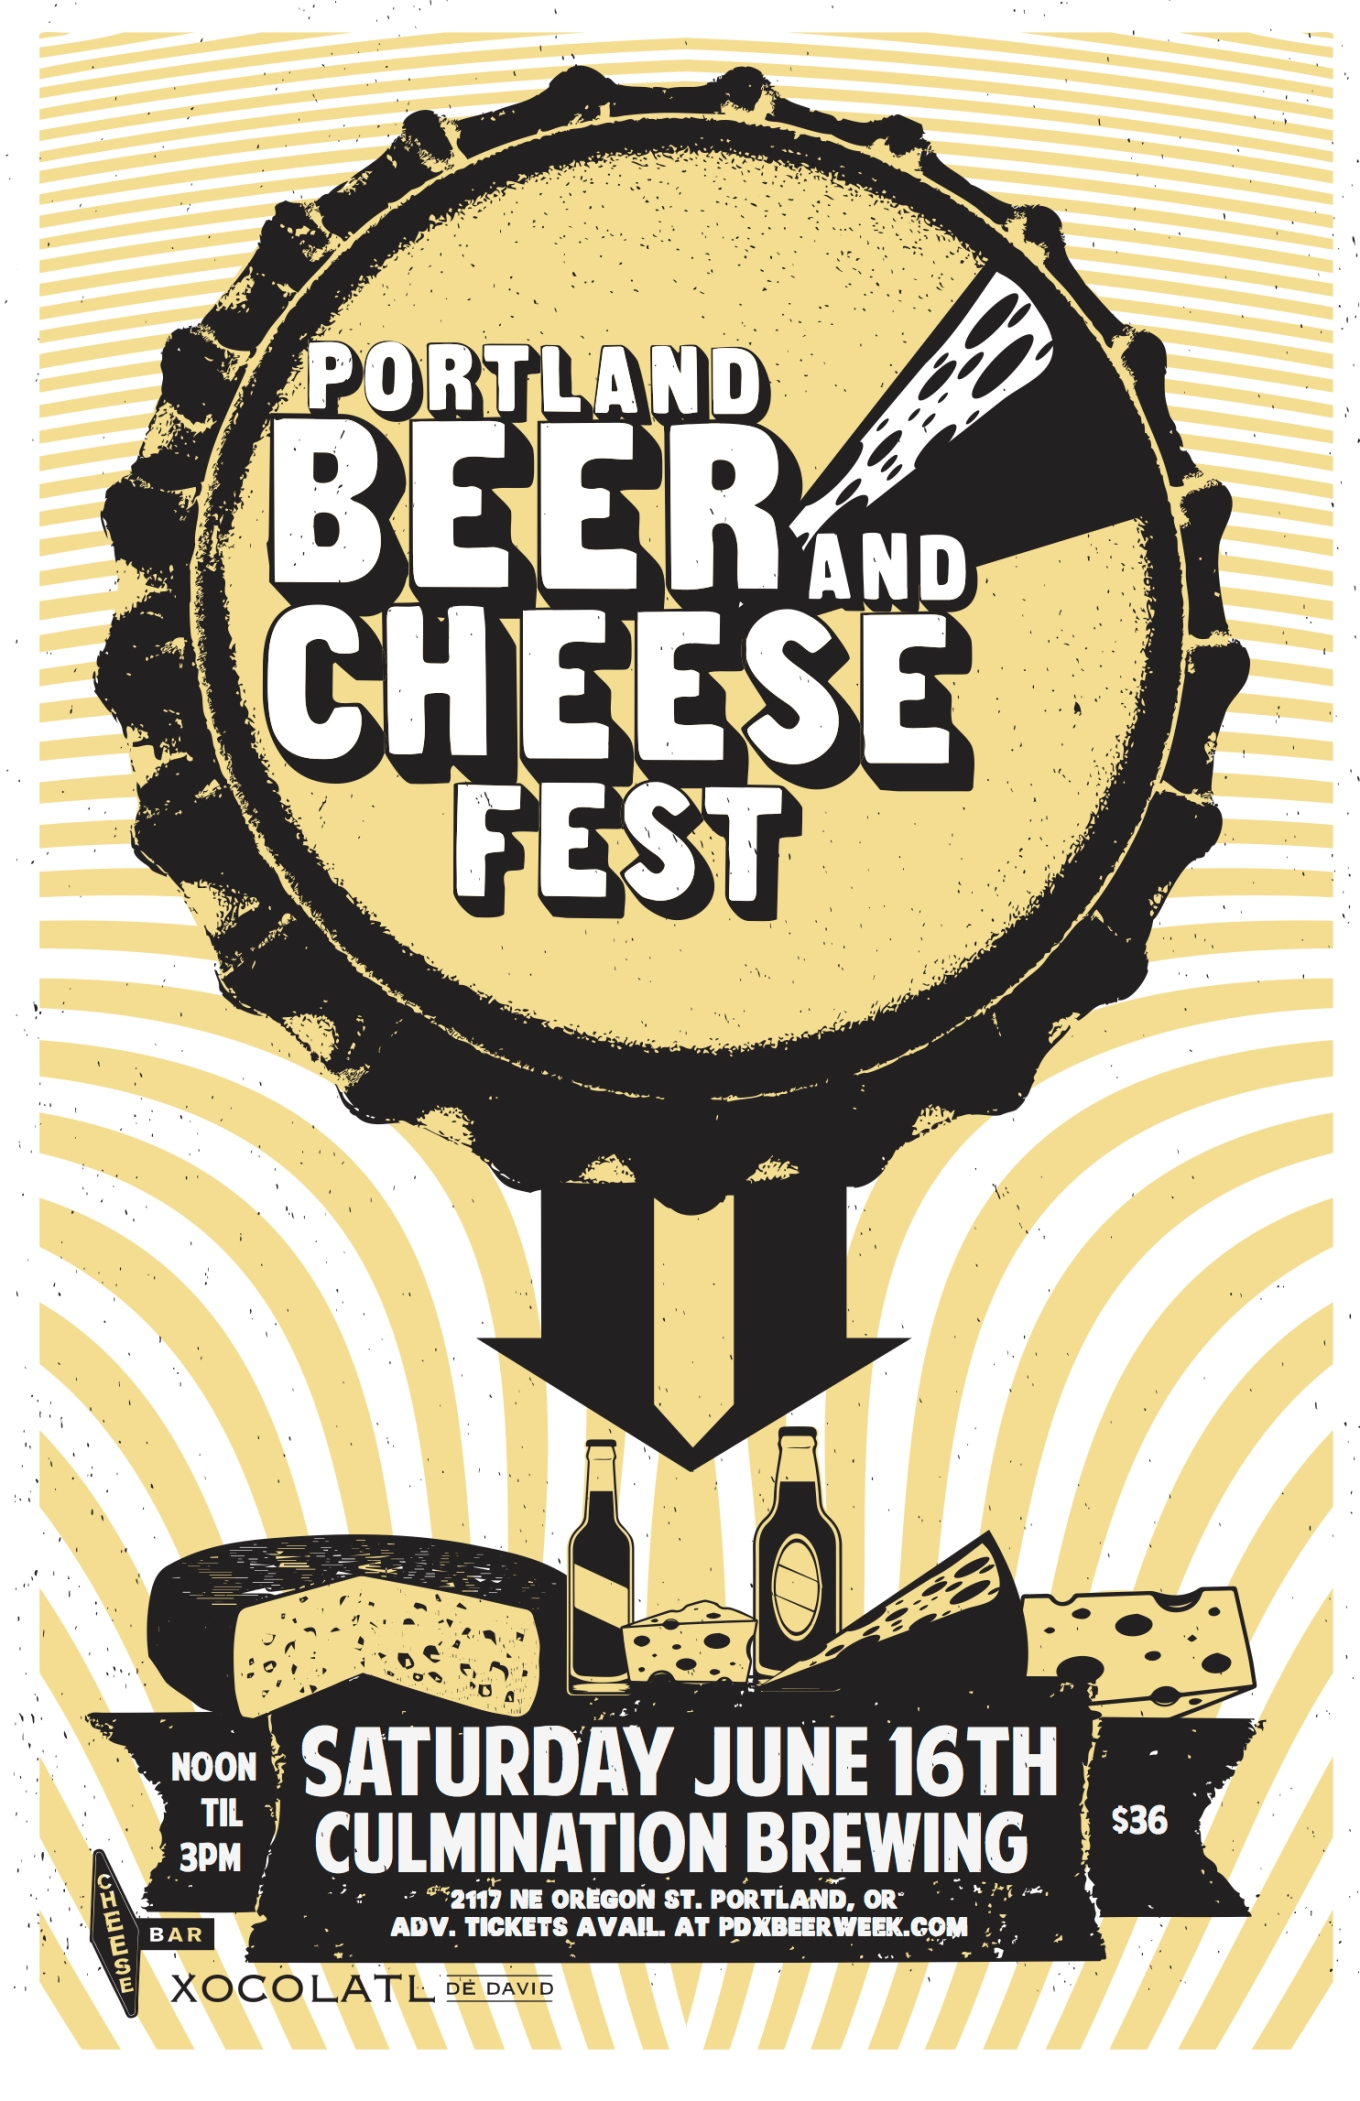 PDX Beer Week Beer and Cheese Festival 2018